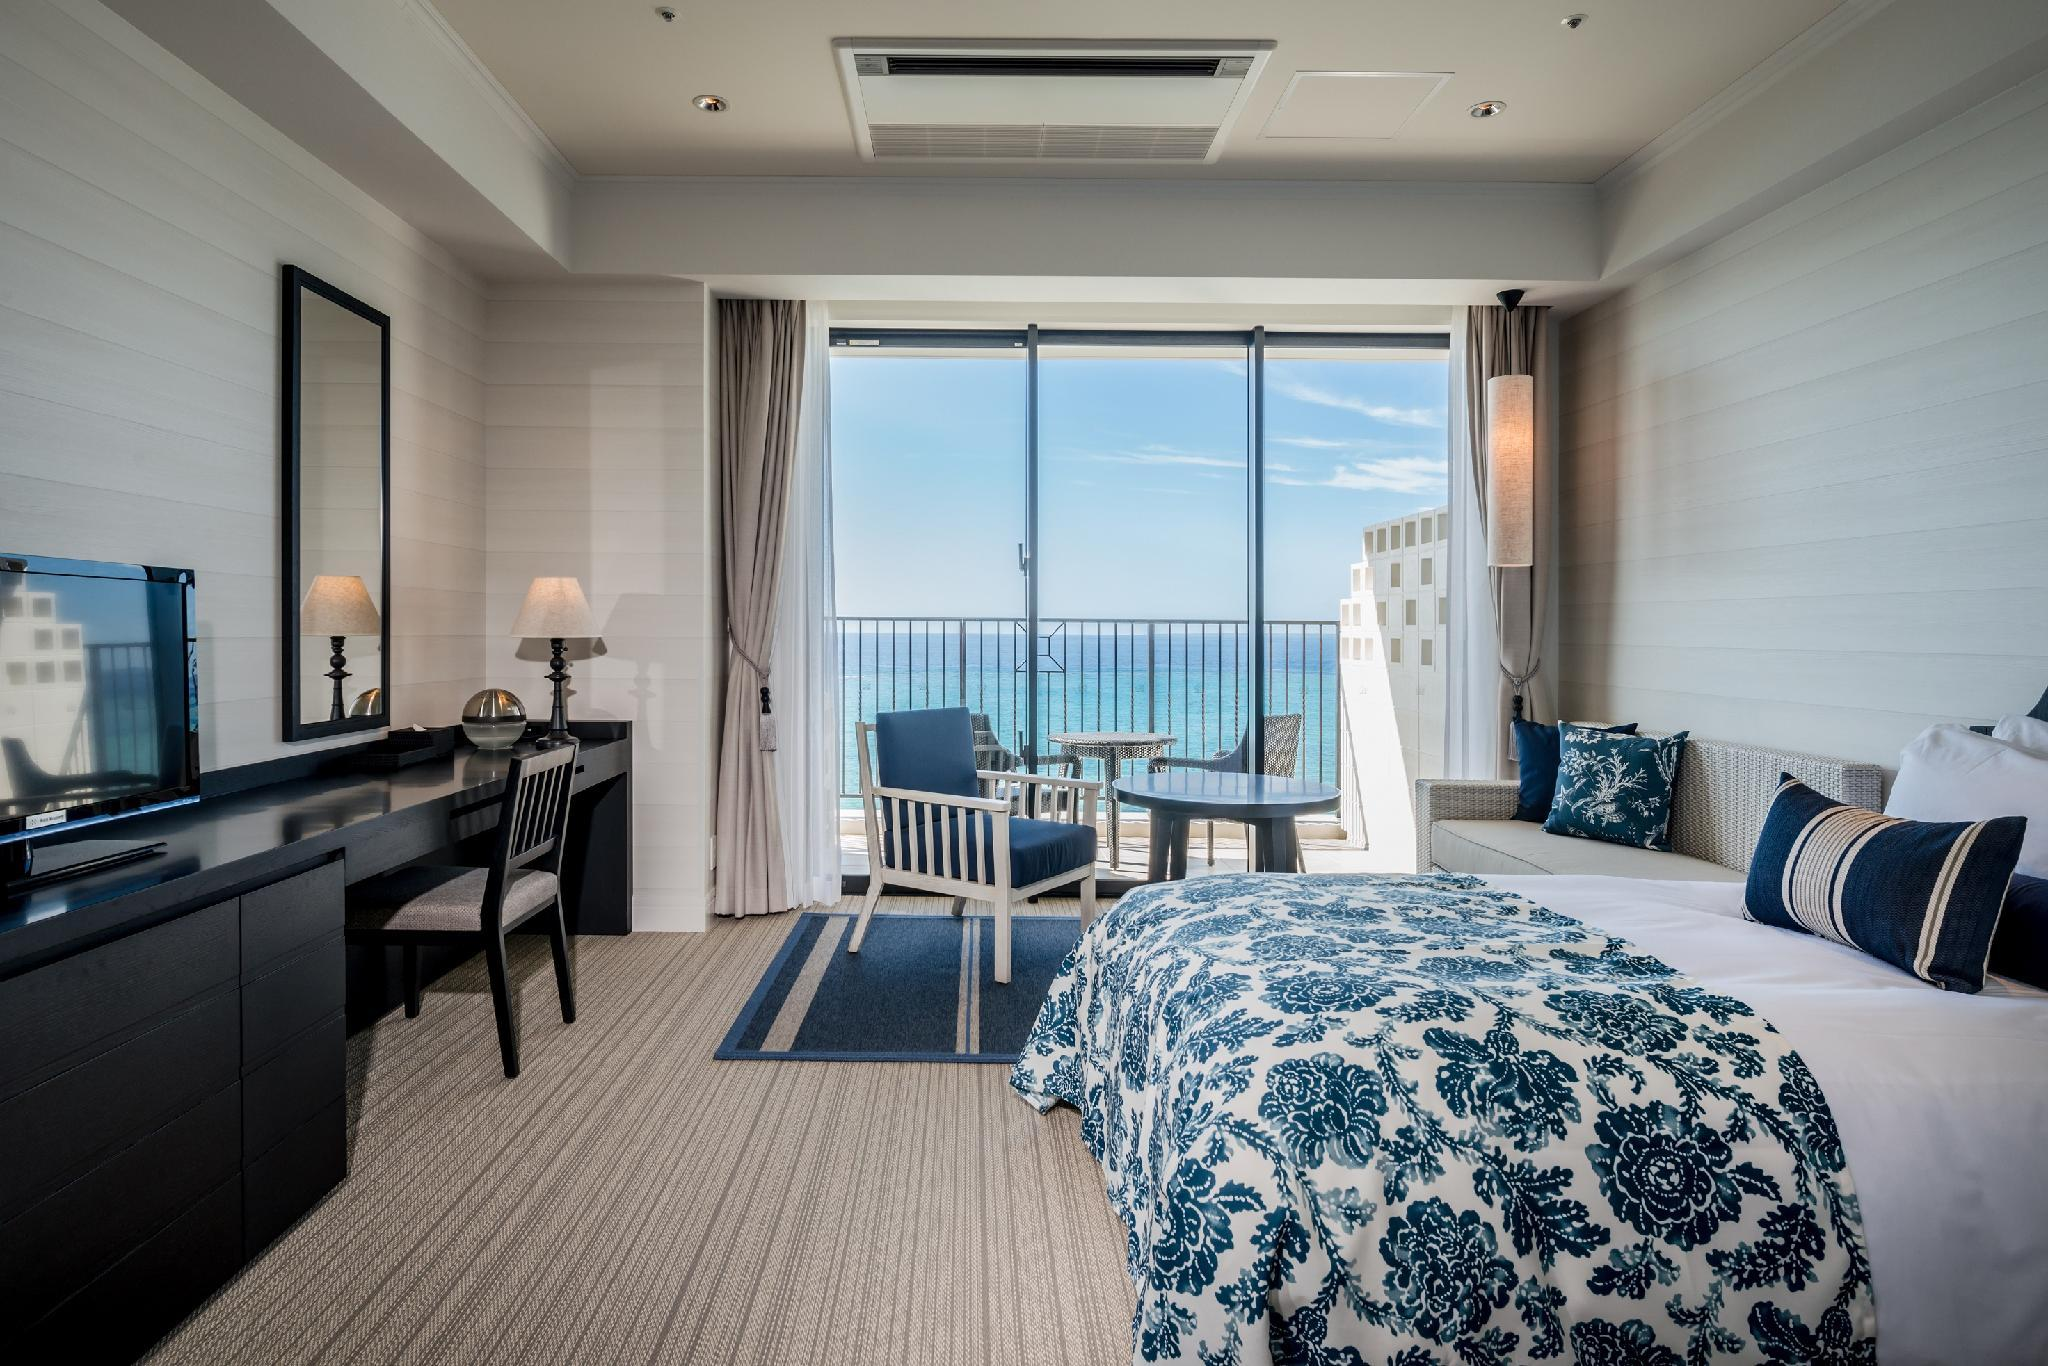 Standard Ocean View Twin Room for 4 People